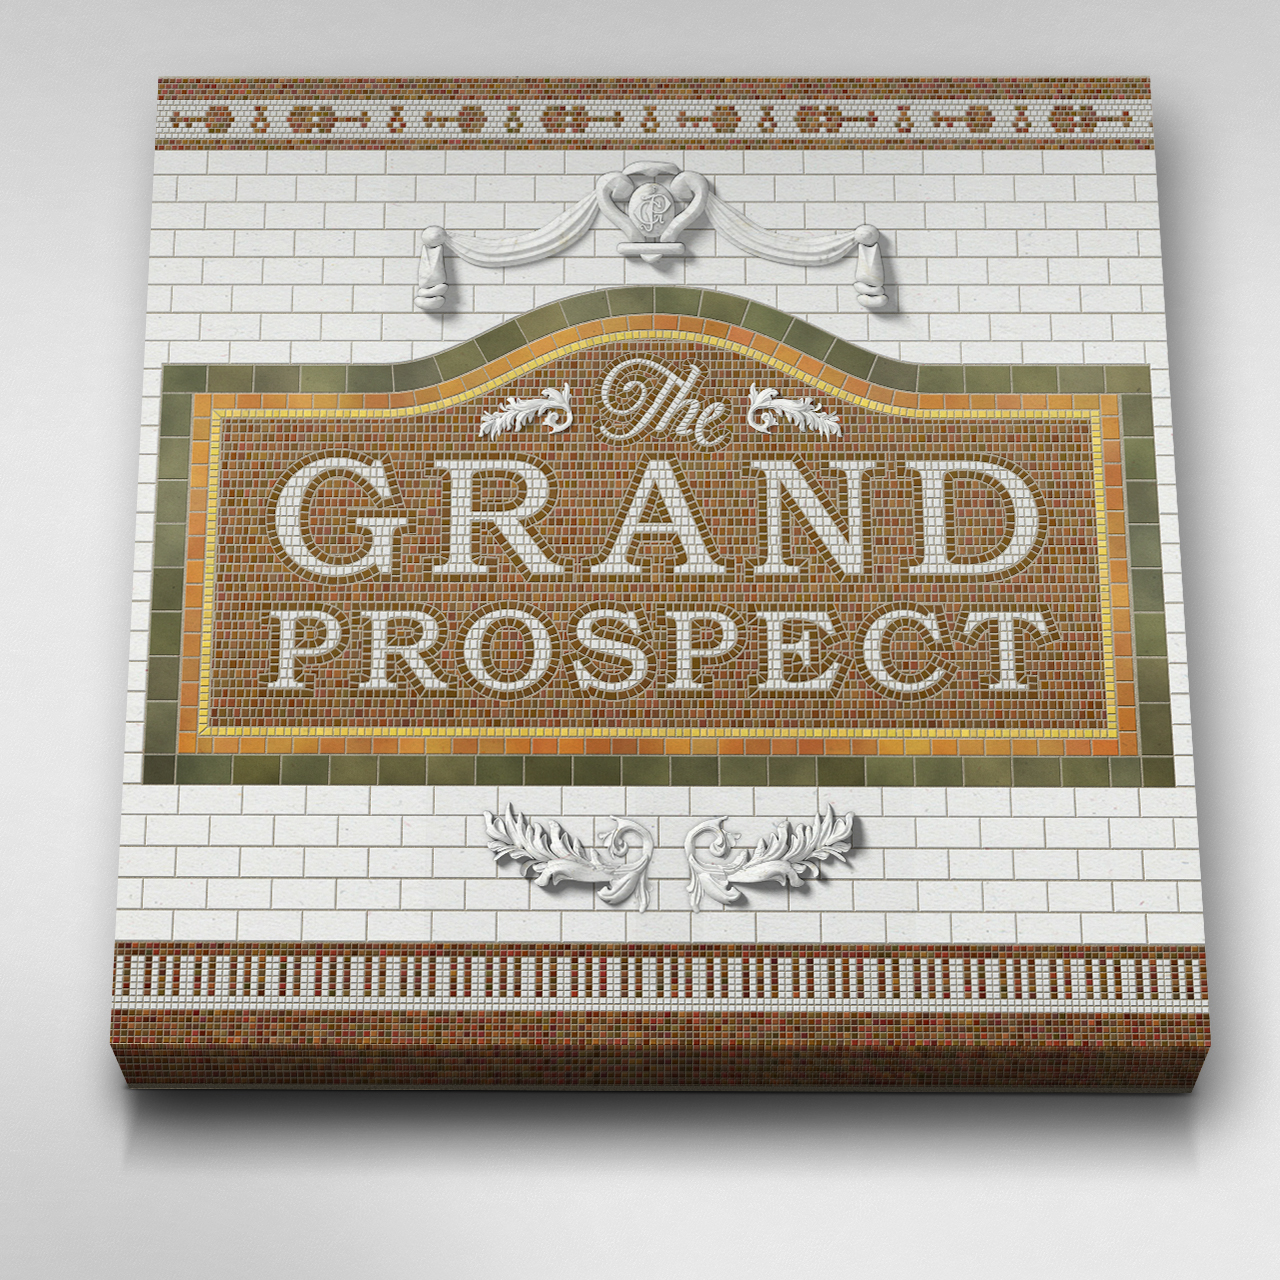 The Grand Prospect, Stretched Canvas 05